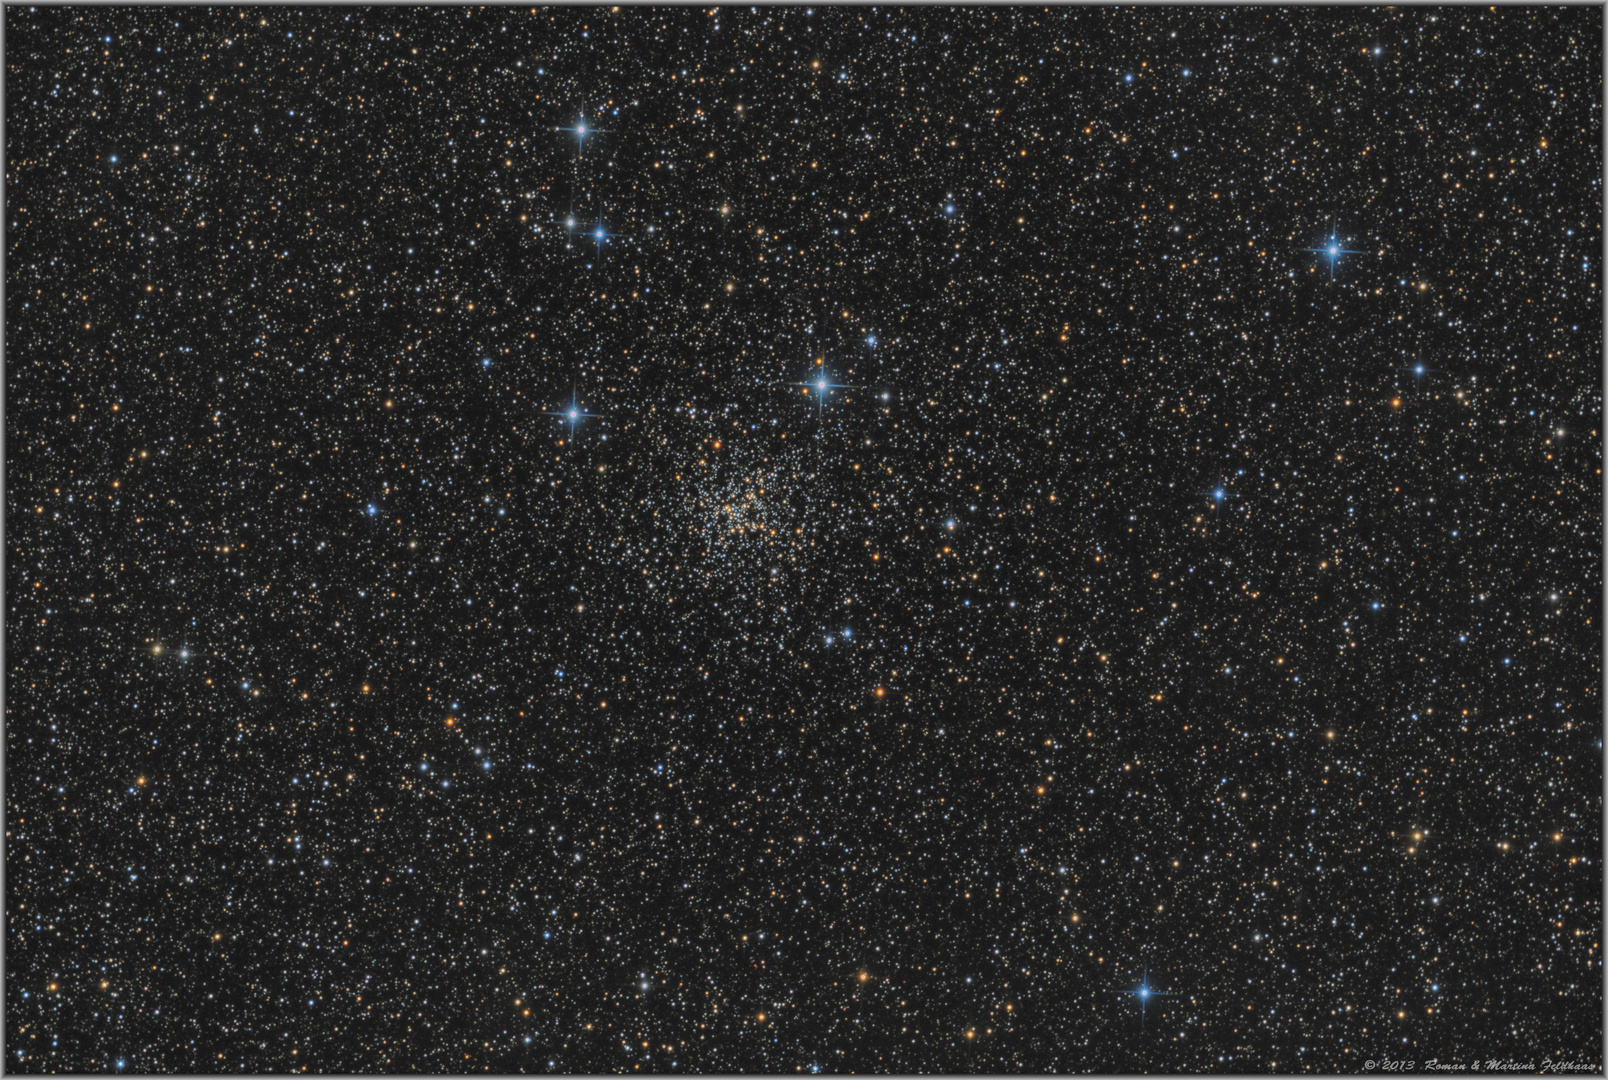 NGC 6819 (Foxhead Cluster)